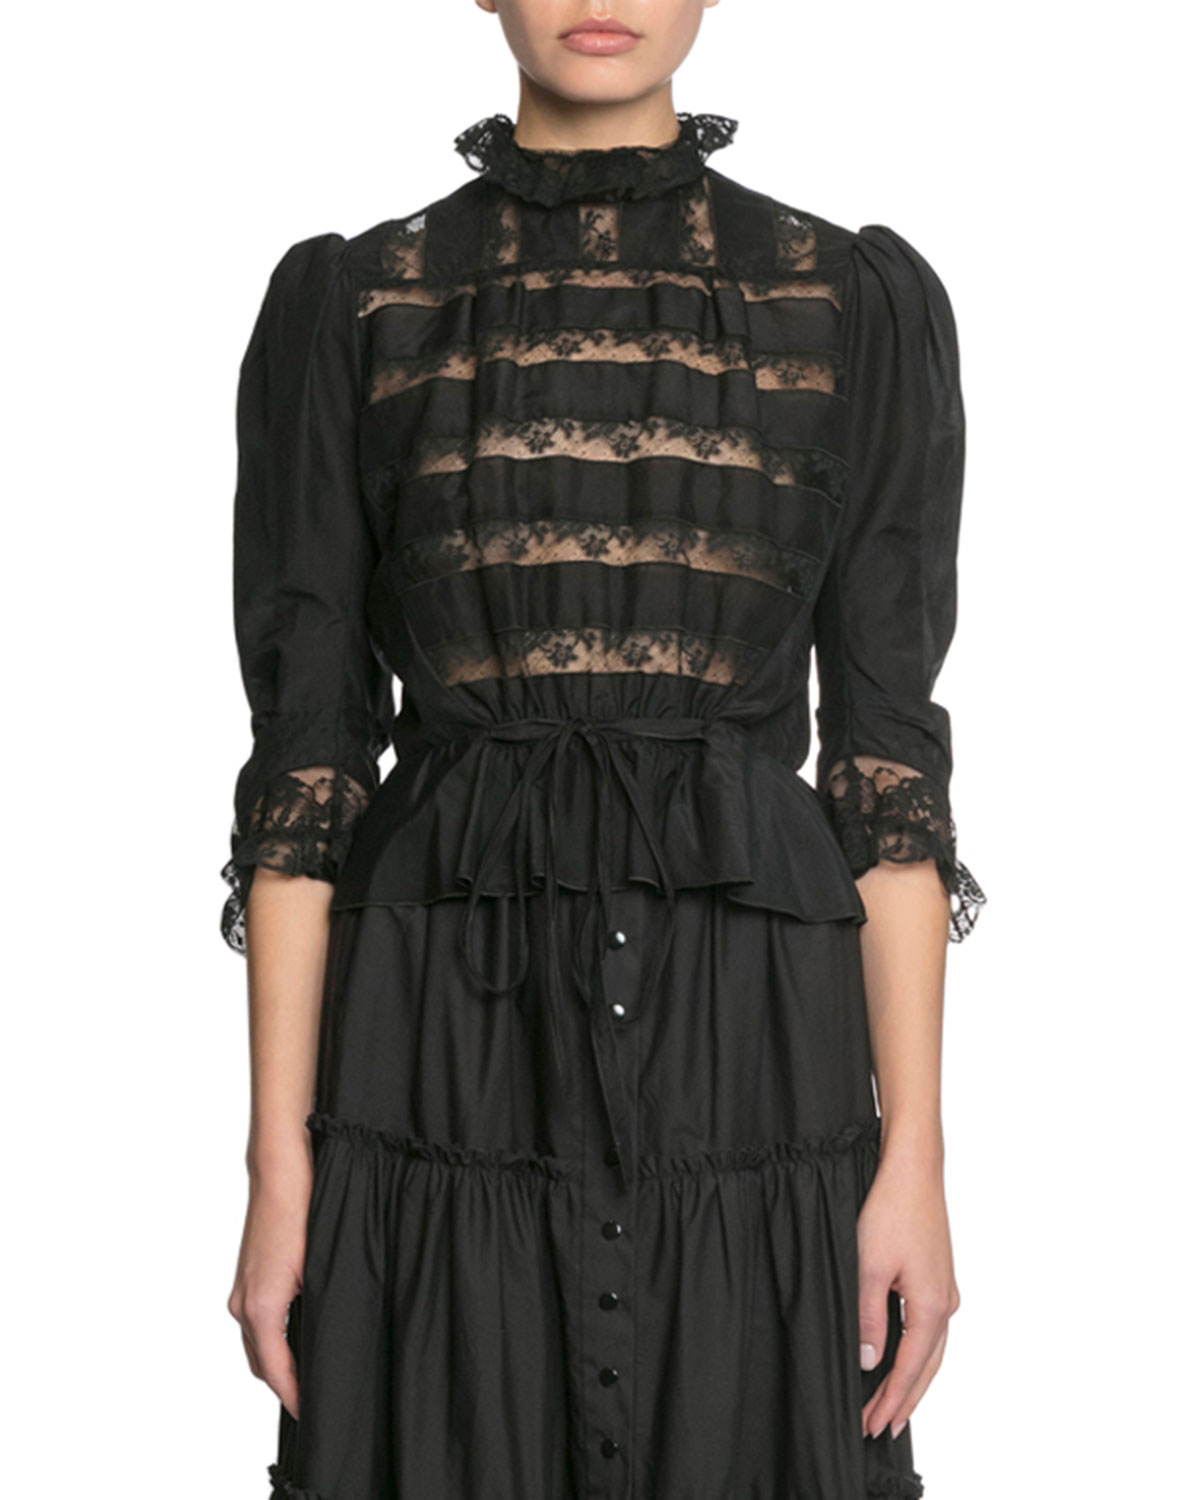 The Victorian Blouse by The Marc Jacobs